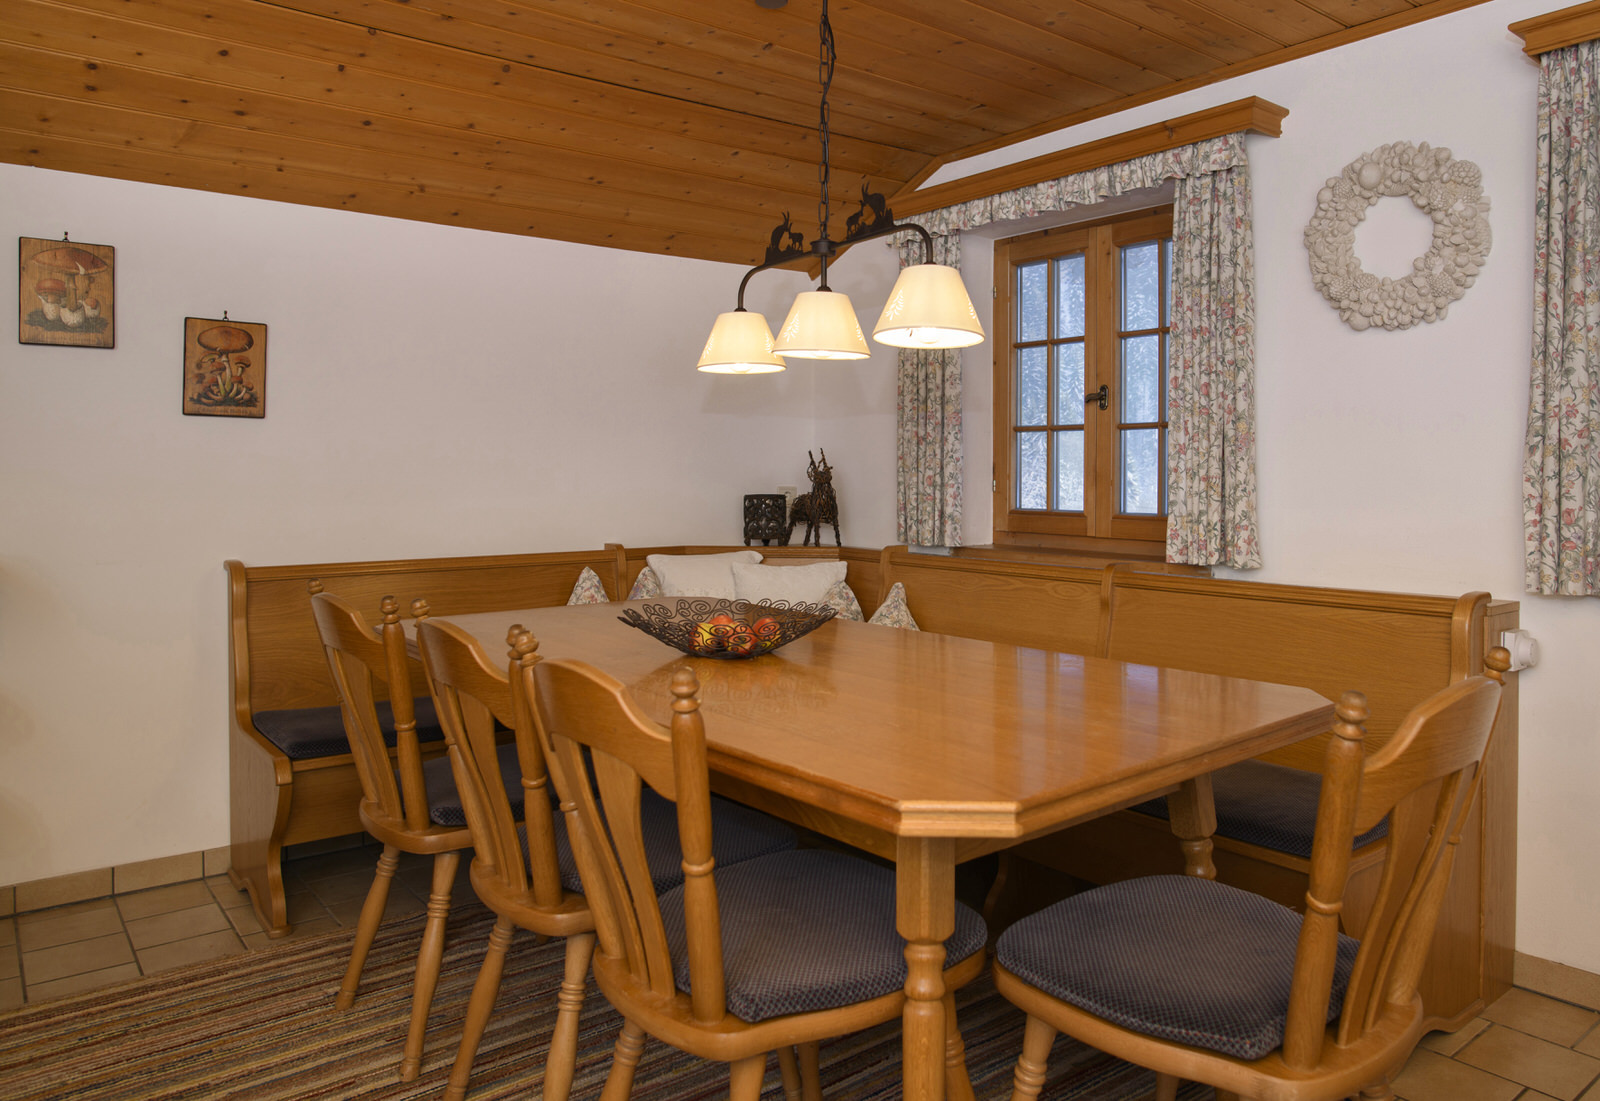 Bärenwald country lodge in the Montafon - kitchen